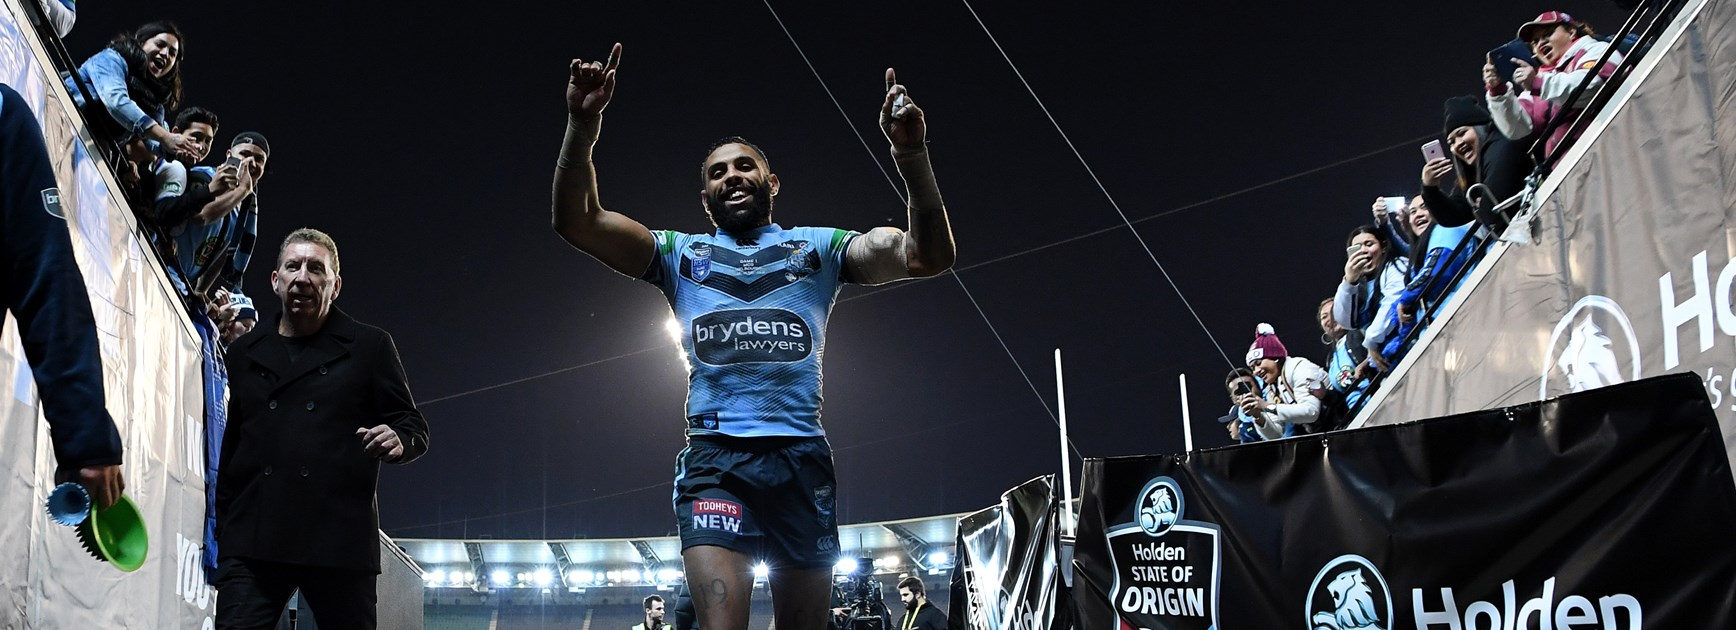 Foxx on the run: Josh Addo-Carr, from breaking bail to reaching NRL dream